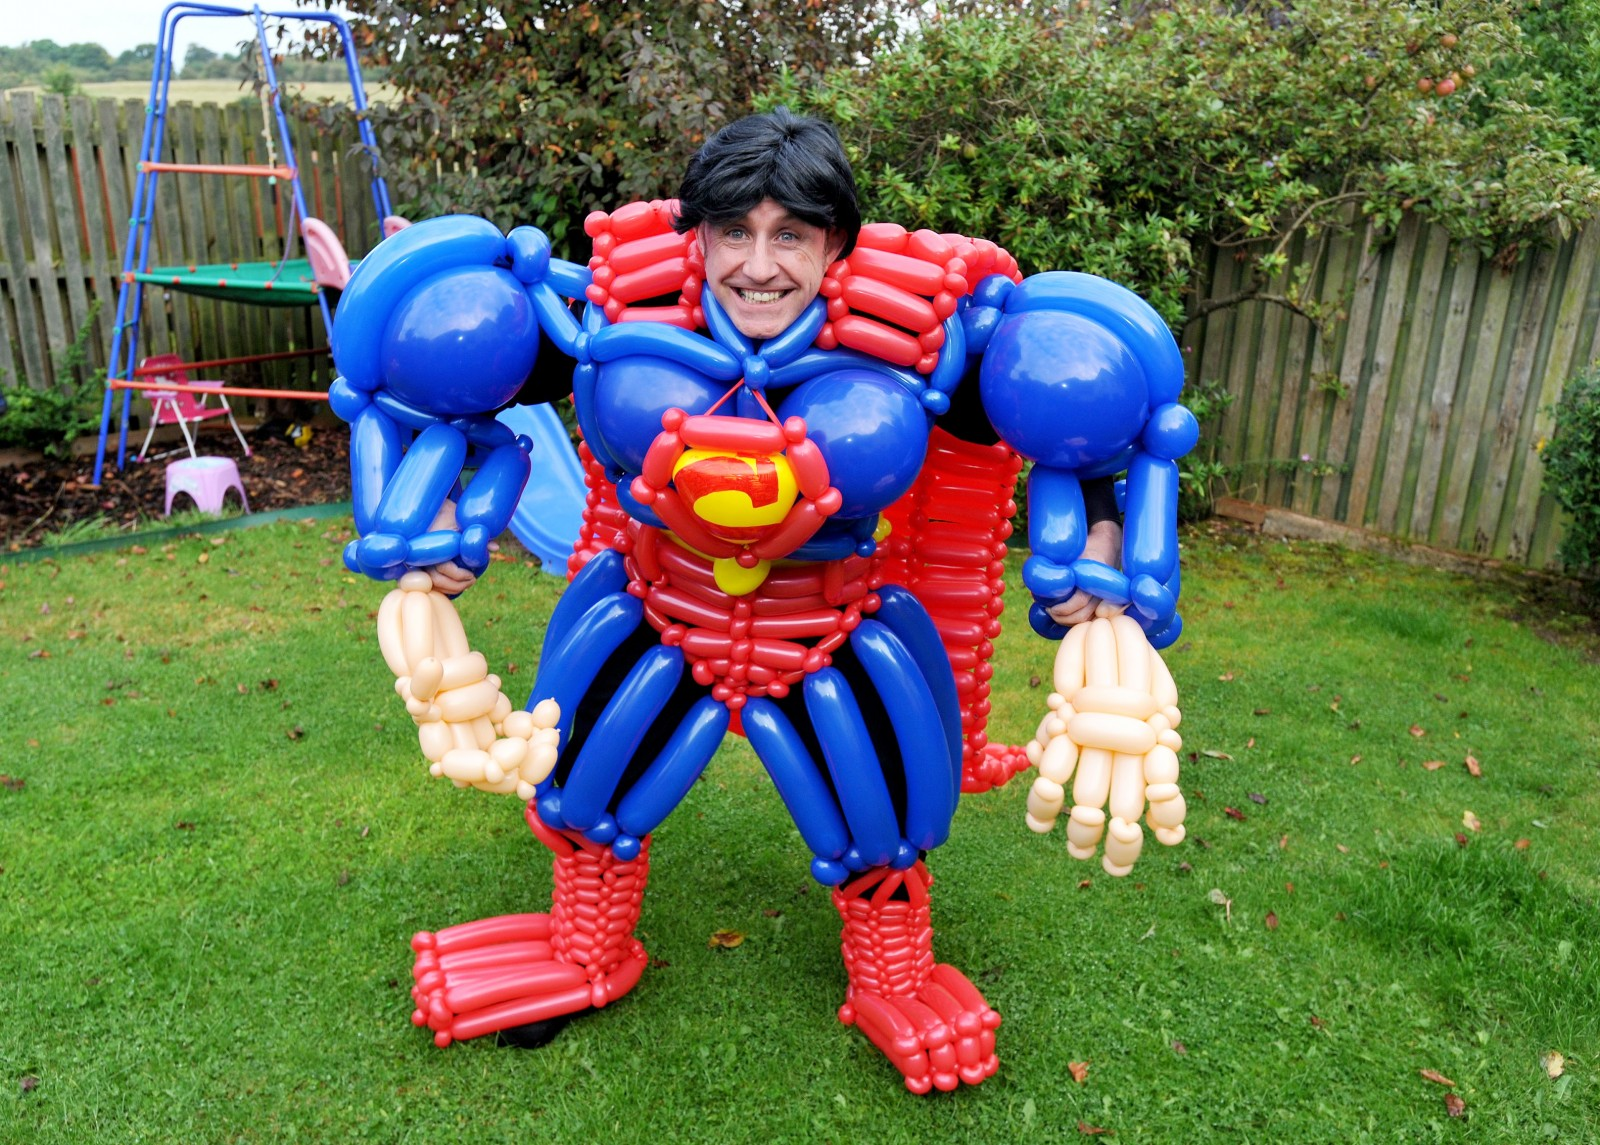 Dad creates superhero suits out of BALLOONS to inspire kids